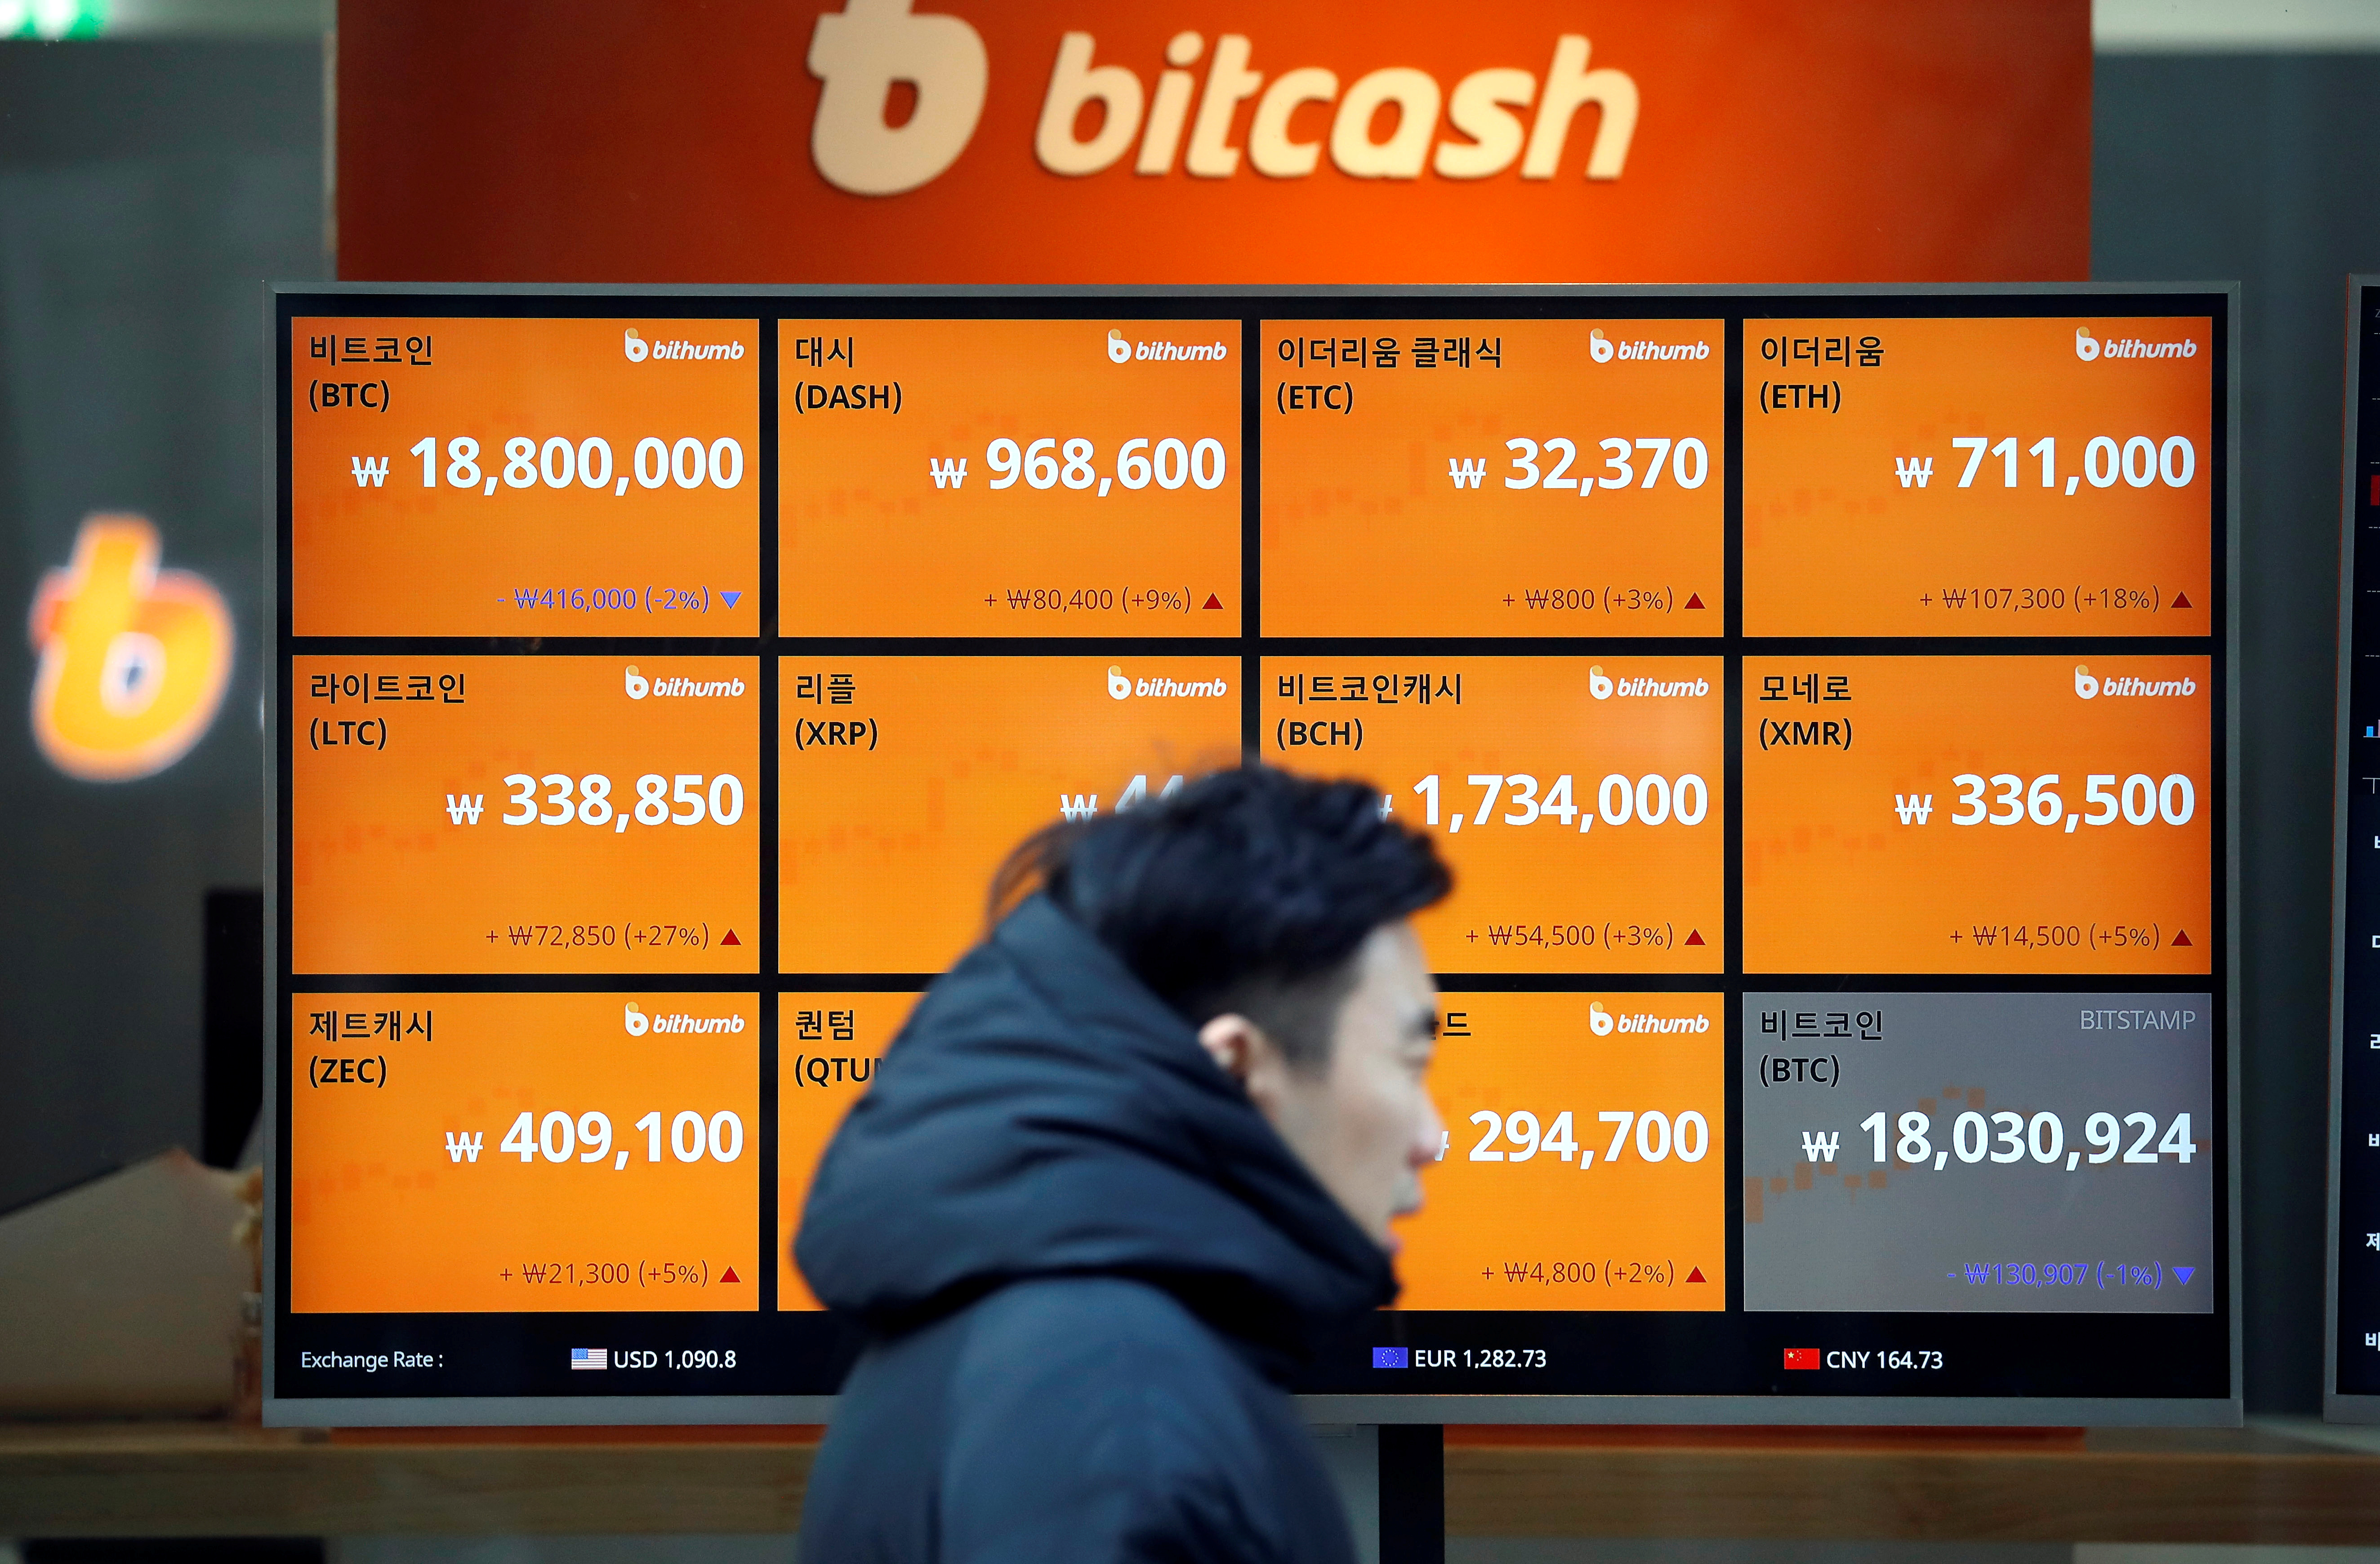 A man walks past an electric board showing exchange rates of various cryptocurrencies including Bitcoin (top-L) at a cryptocurrencies exchange in Seoul, South Korea, Dec. 13, 2017.